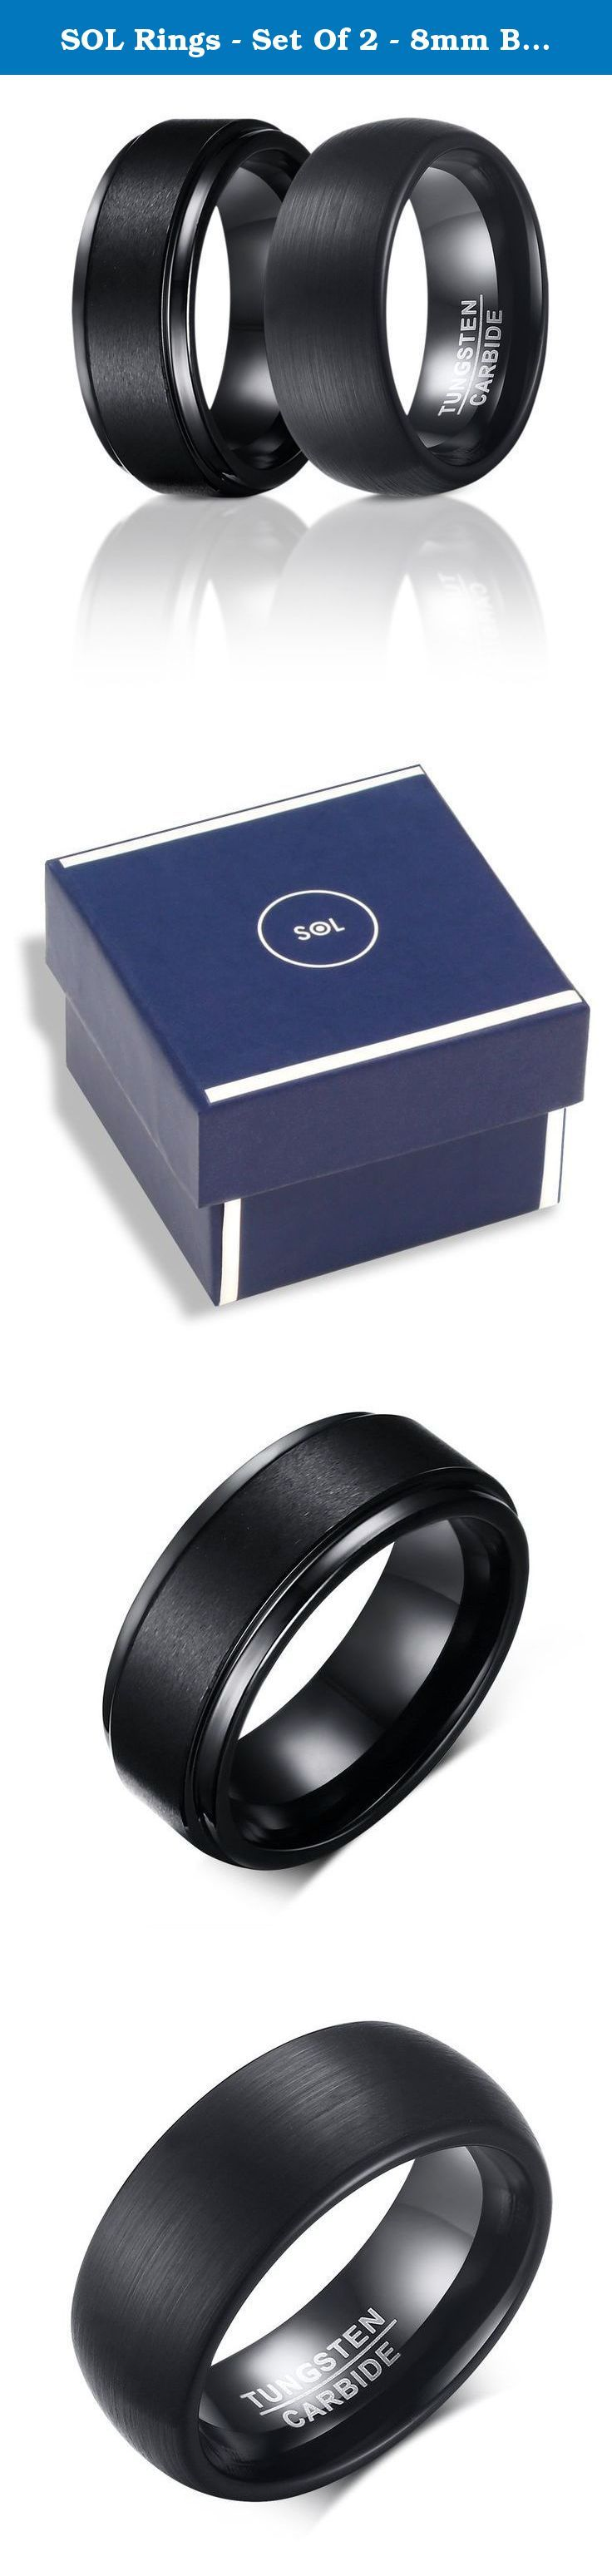 SOL Rings - Set Of 2 - 8mm Black Tungsten Carbide Wedding Rings For Men, 1 Matte Center and Step Edge Band and 1 Enamel Domed Round Brushed Band, Comfort Fit, Size 9. At SOL Rings we are commited to provide the best quality rings and customer service. Our rings are cobalt free and nickel lead-free. With us you are in good hands. Few tips for meintenance: 1. Cleaning - simply mix warm water with a few drops of mild soap. It is best to avoid using an ultrasonic jewelry cleaner when cleaning...